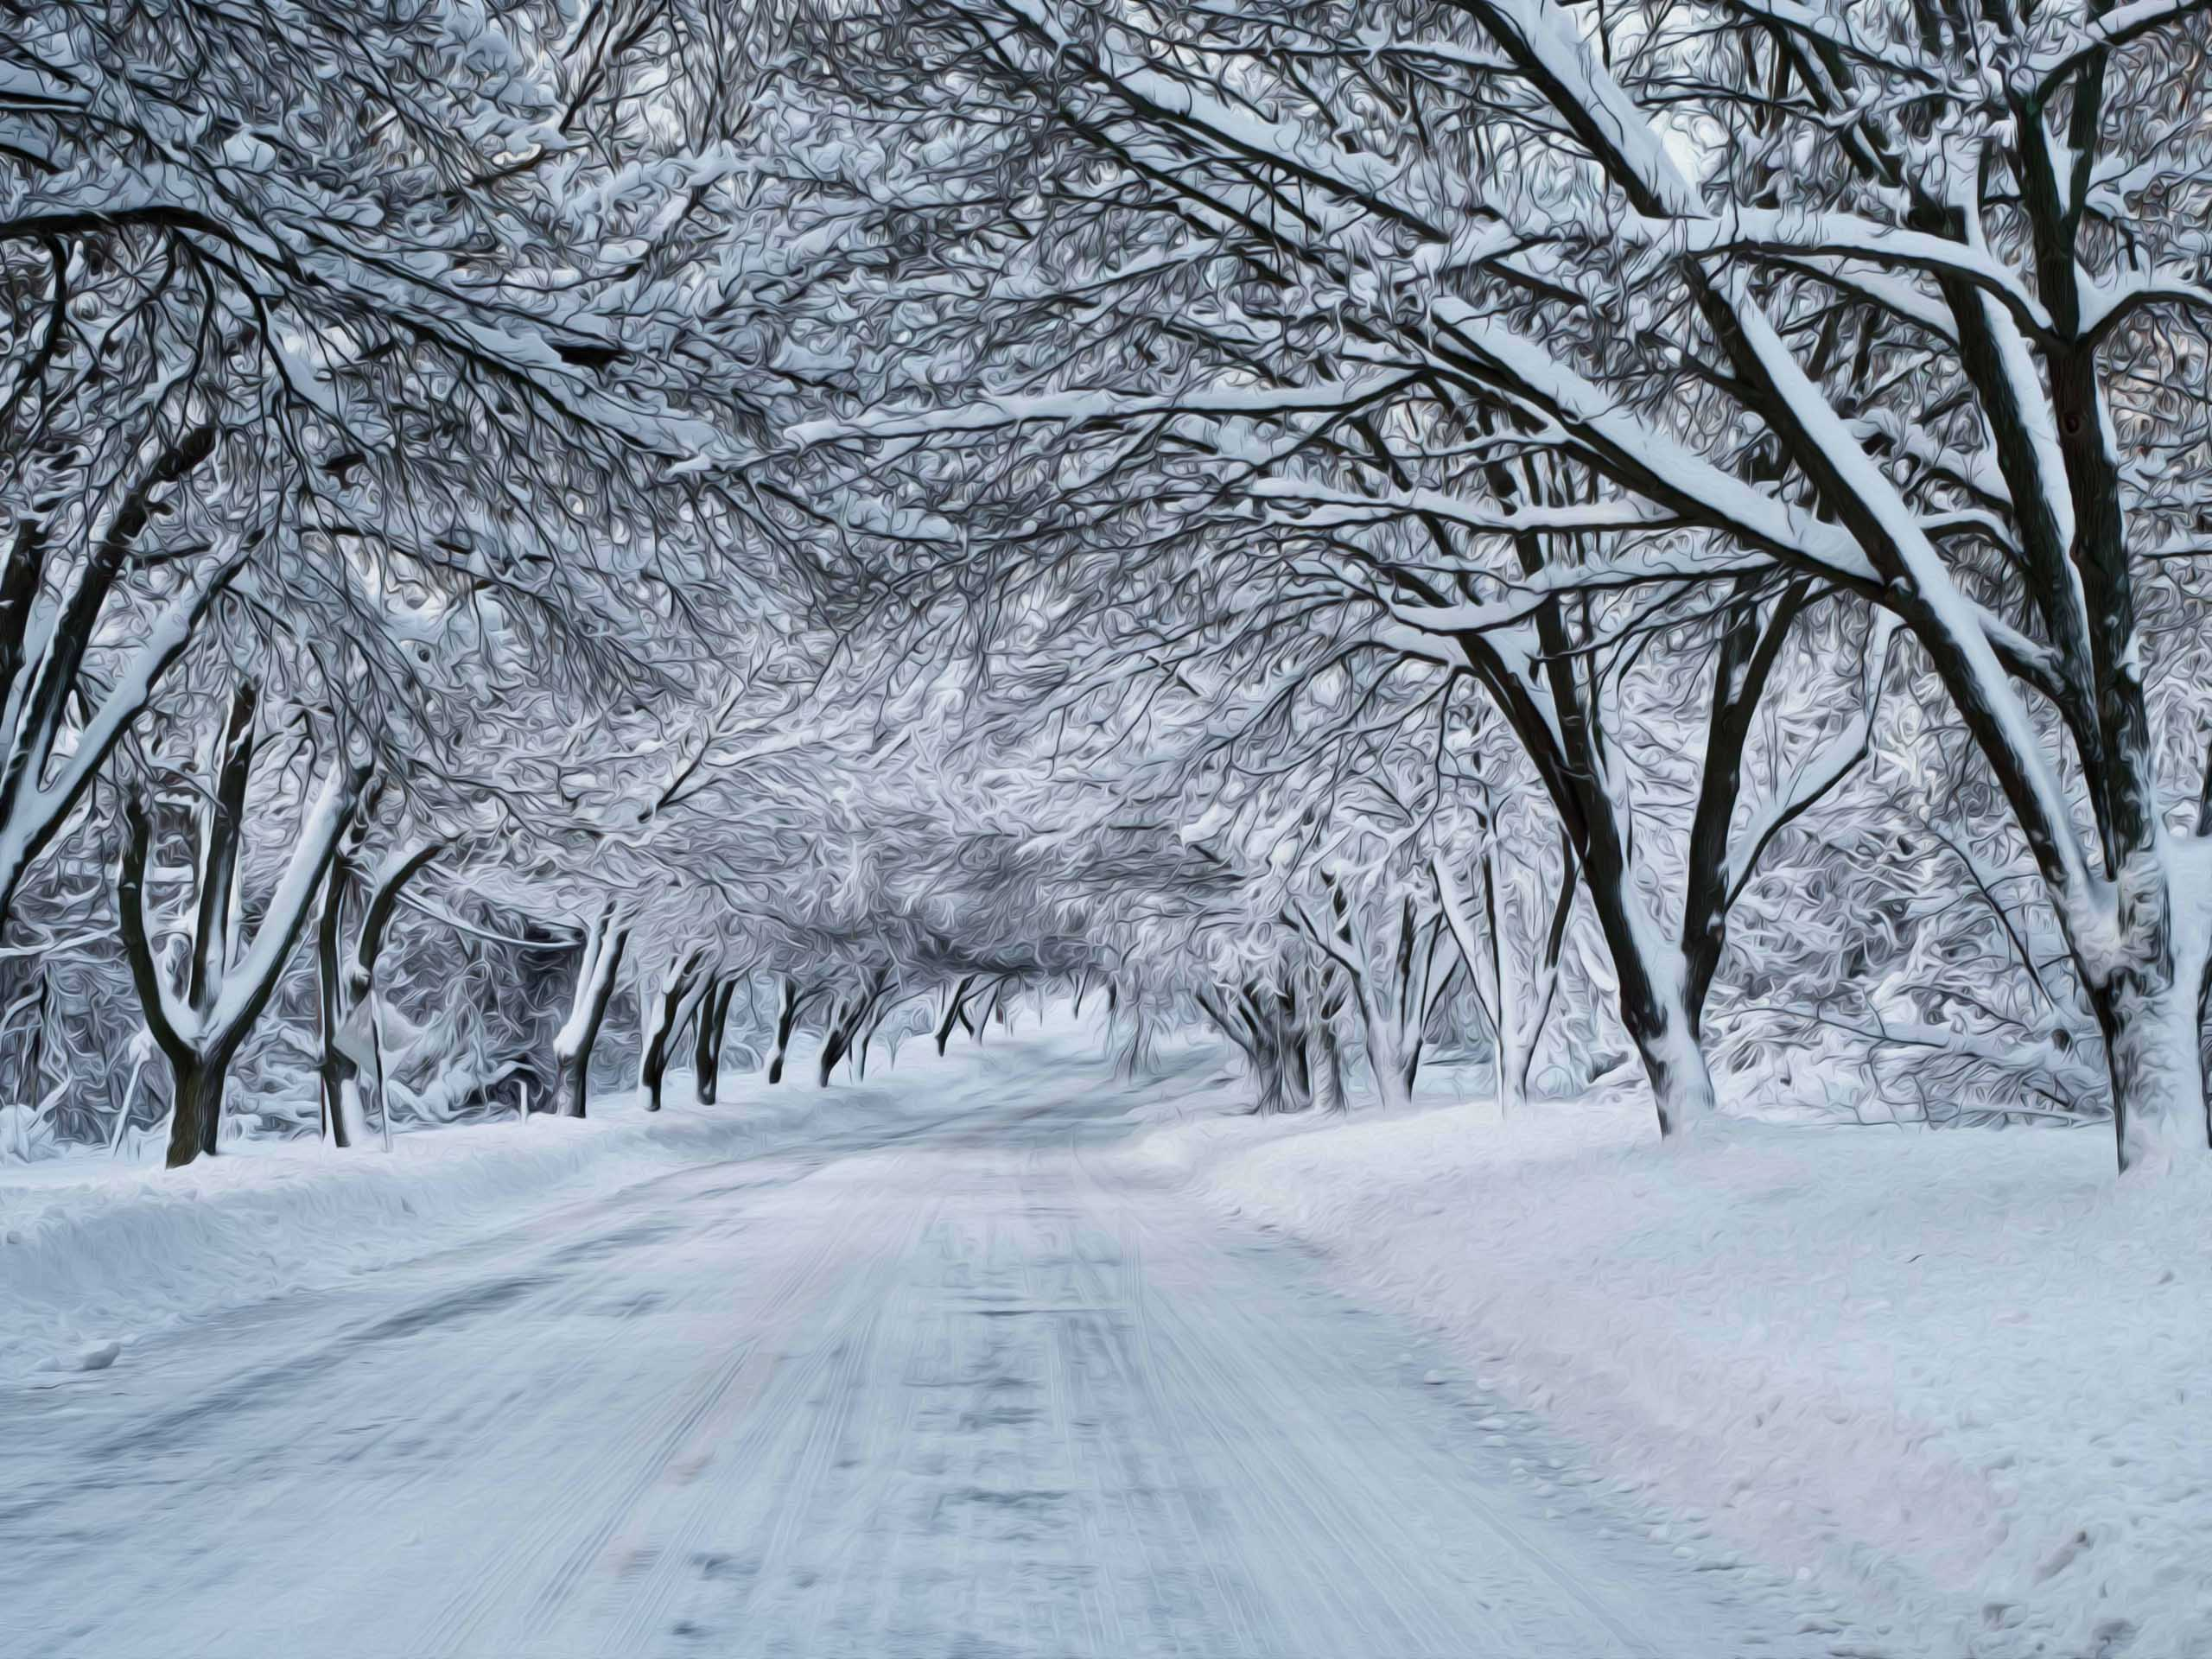 Winter nature snow scene free desktop wallpapers for widescreen 4 mp voltagebd Choice Image